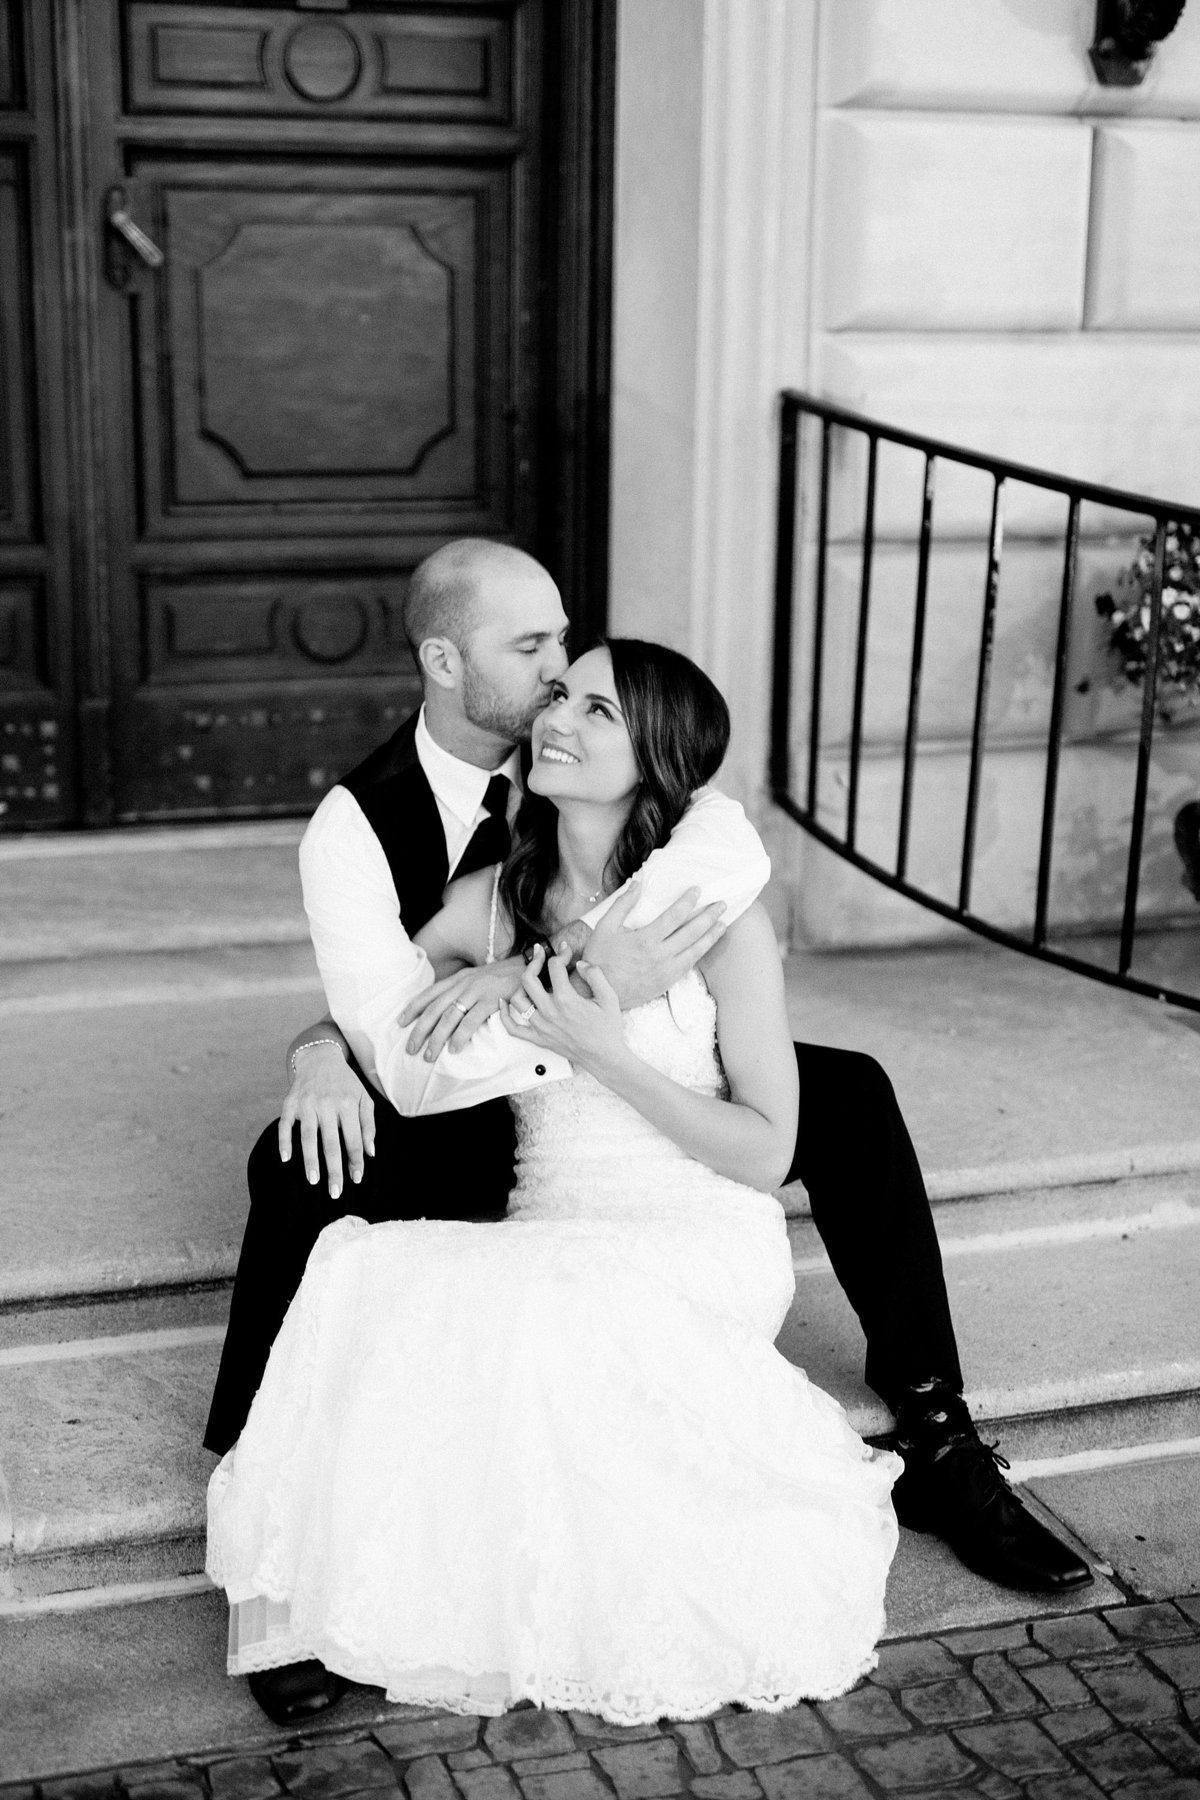 Shuster-Wedding-Grosse-Pointe-War-Memorial-Breanne-Rochelle-Photography157